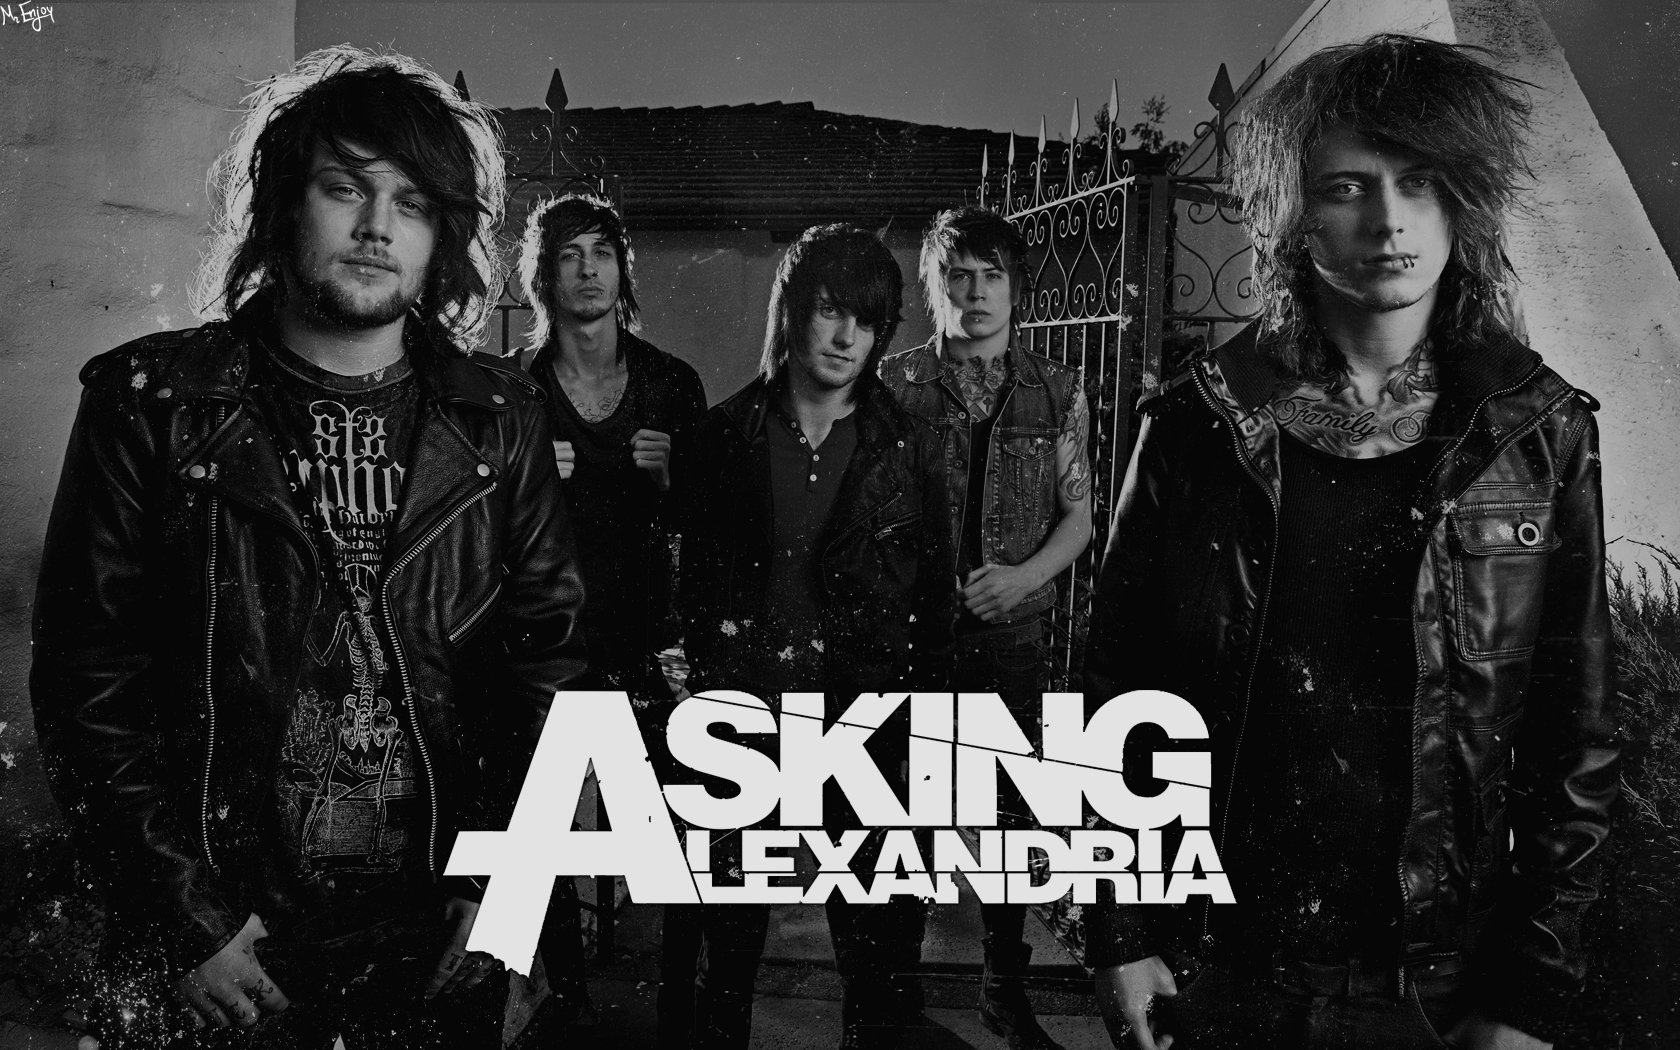 Hd Wallpapers Asking Alexandria 1680 X 1050 136 Kb Jpeg HD 1680x1050